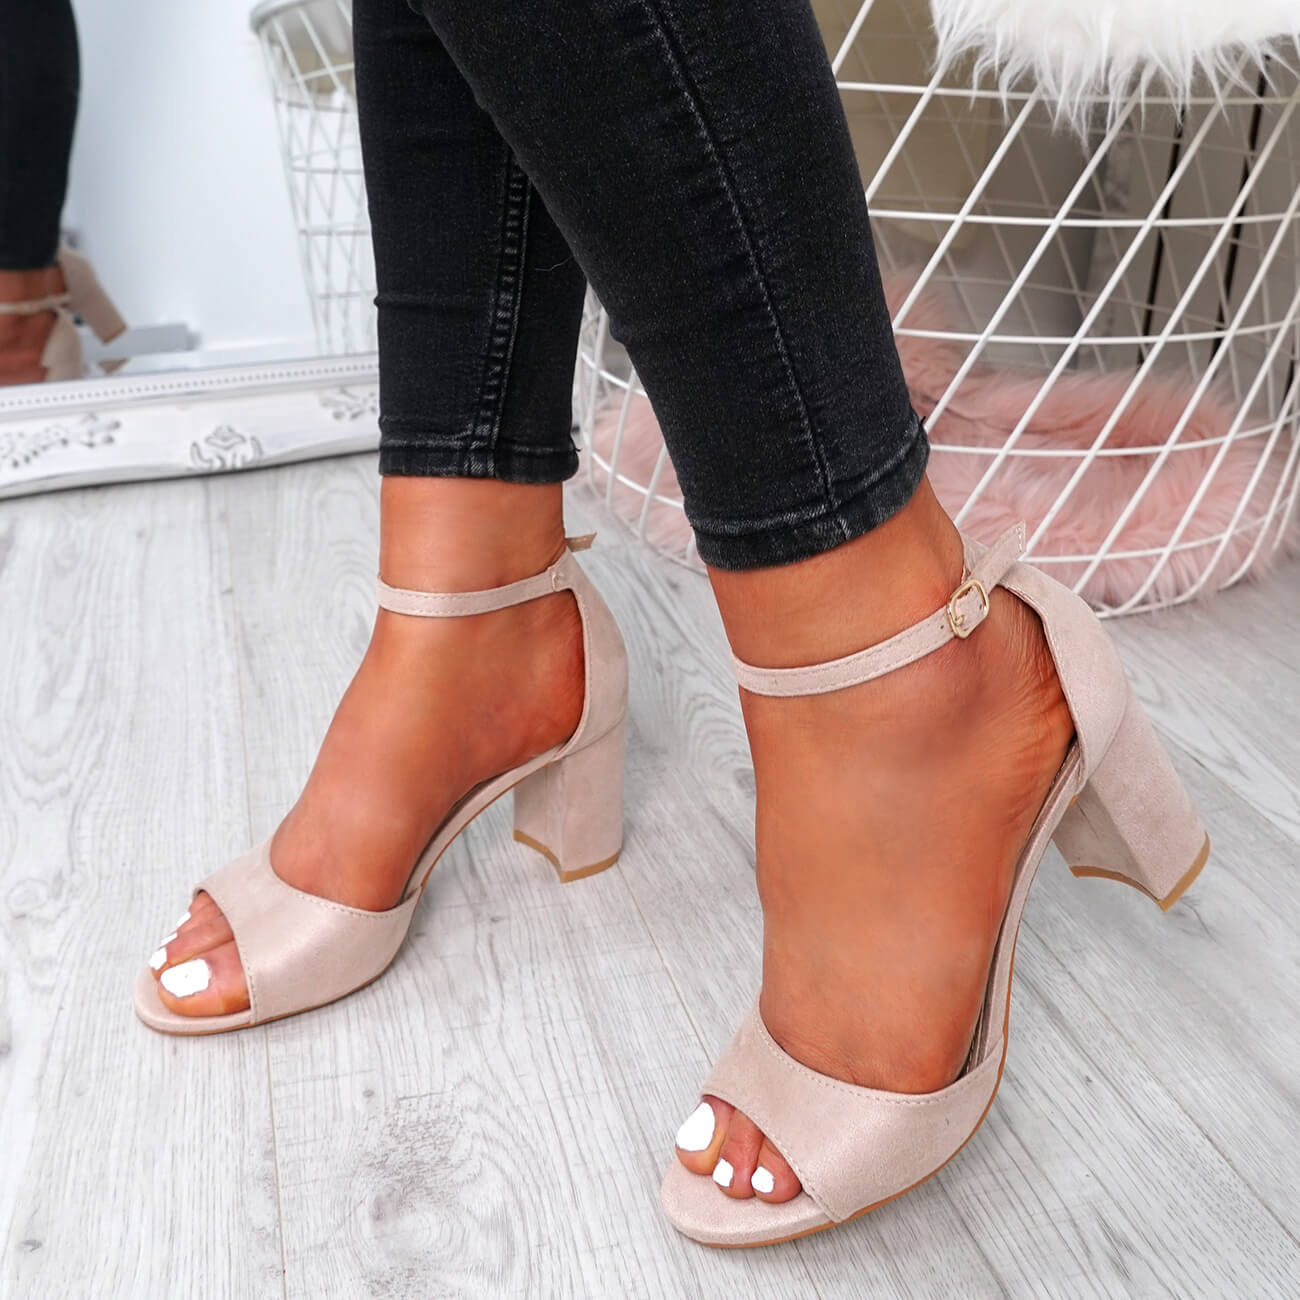 WOMENS-LADIES-ANKLE-STRAP-HIGH-BLOCK-HEEL-SANDALS-PEEP-TOE-PARTY-SHOES-SIZE thumbnail 7